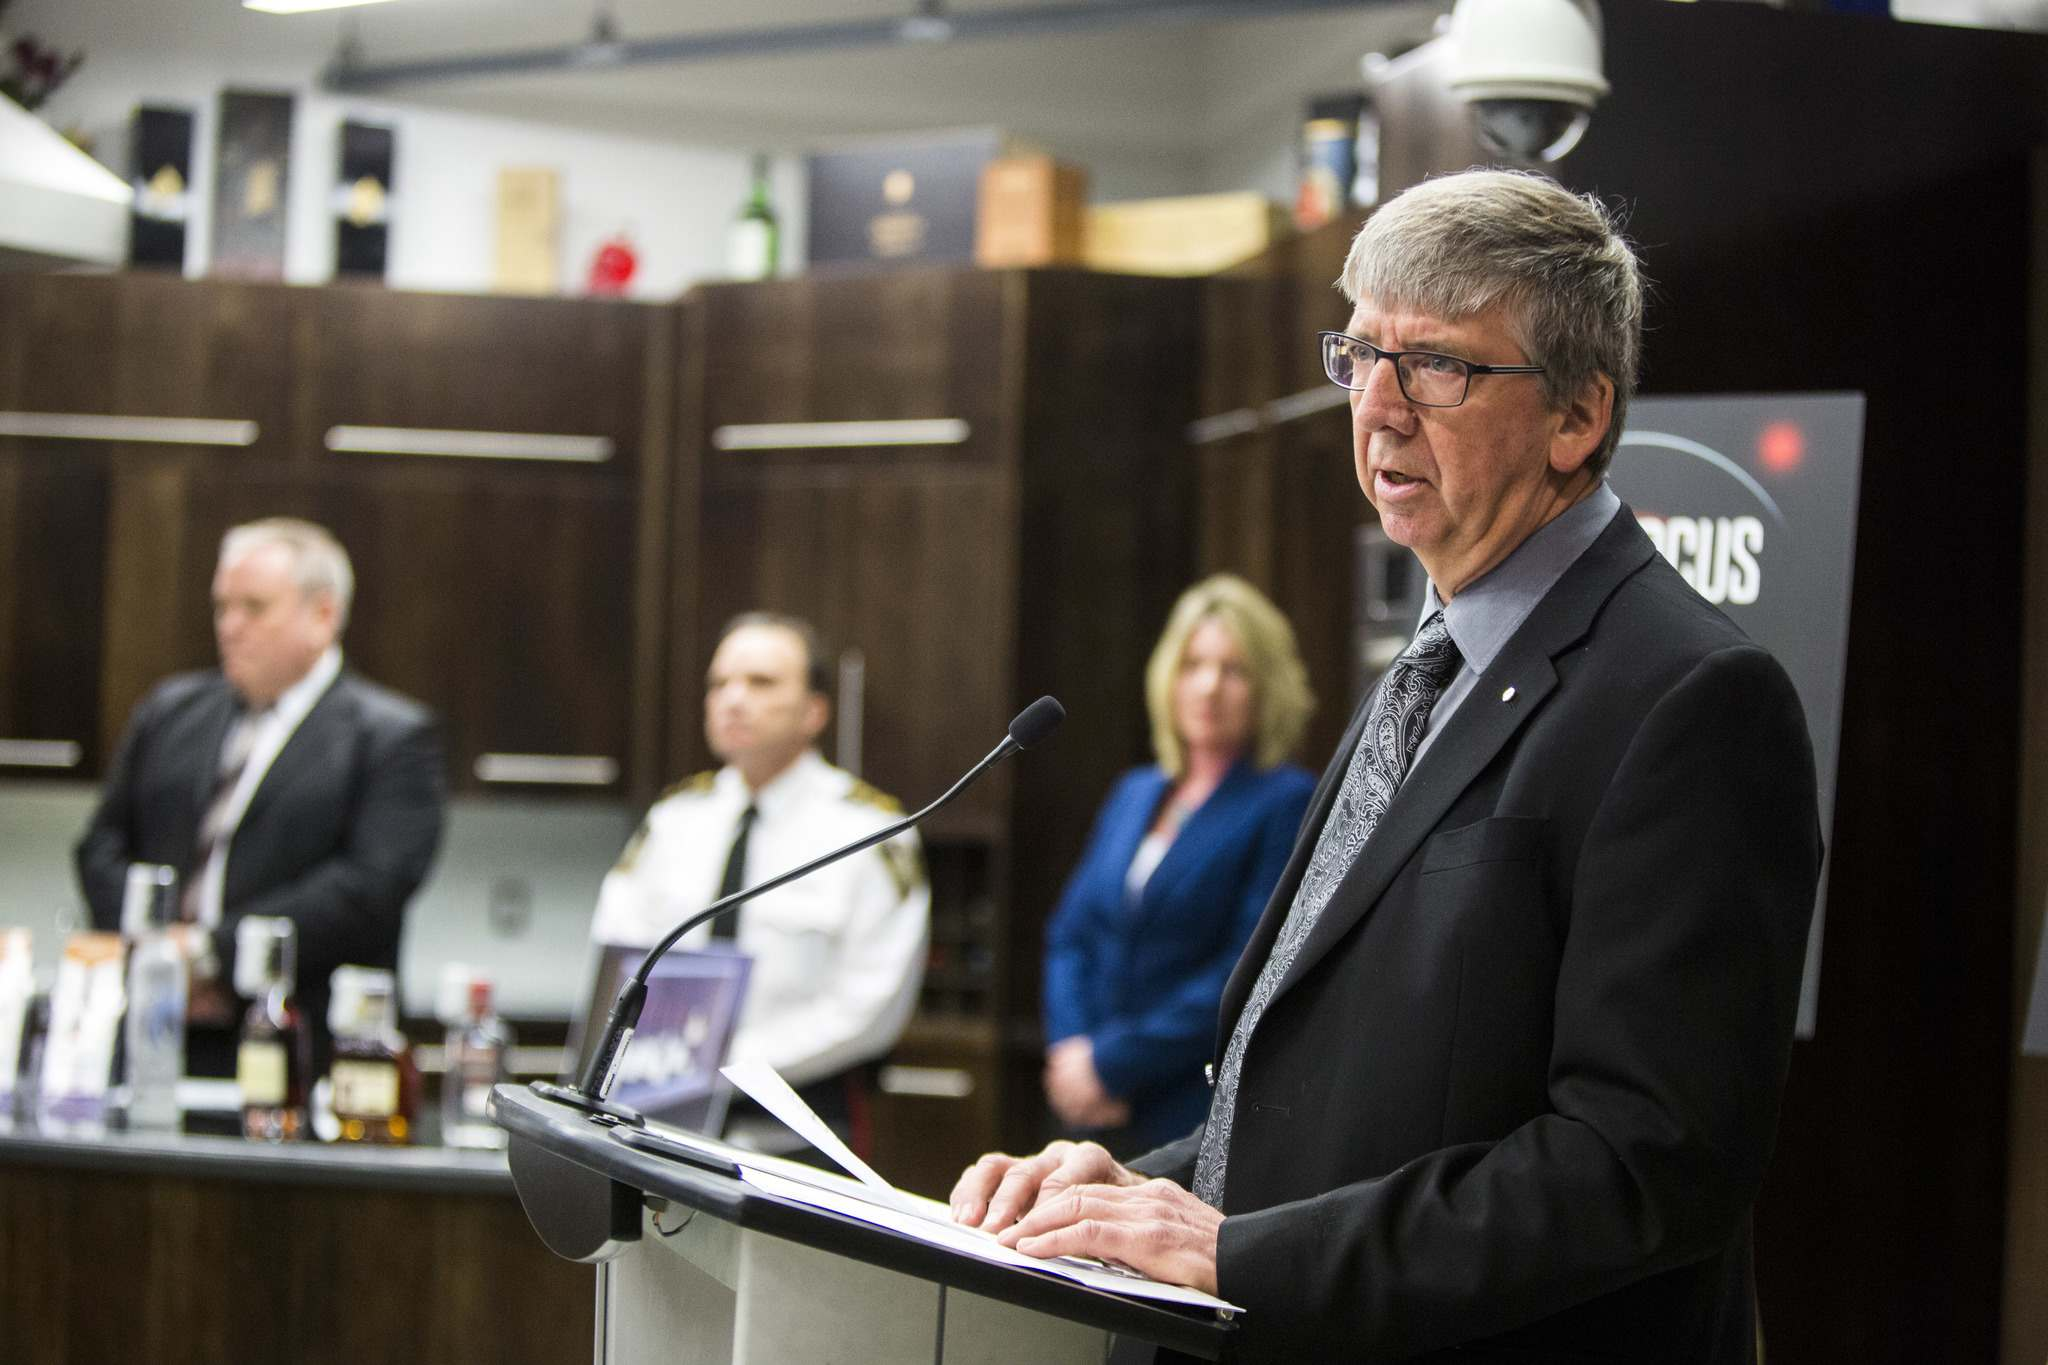 Manitoba Liquor and Lotteries president and CEO Peter Hak announced new anti-theft strategies Thursday, including trained loss-prevention officer teams, a no-bag policy at certain stores and changes to store layouts. (Mikaela Mackenzie / Winnipeg Free Press)</p>